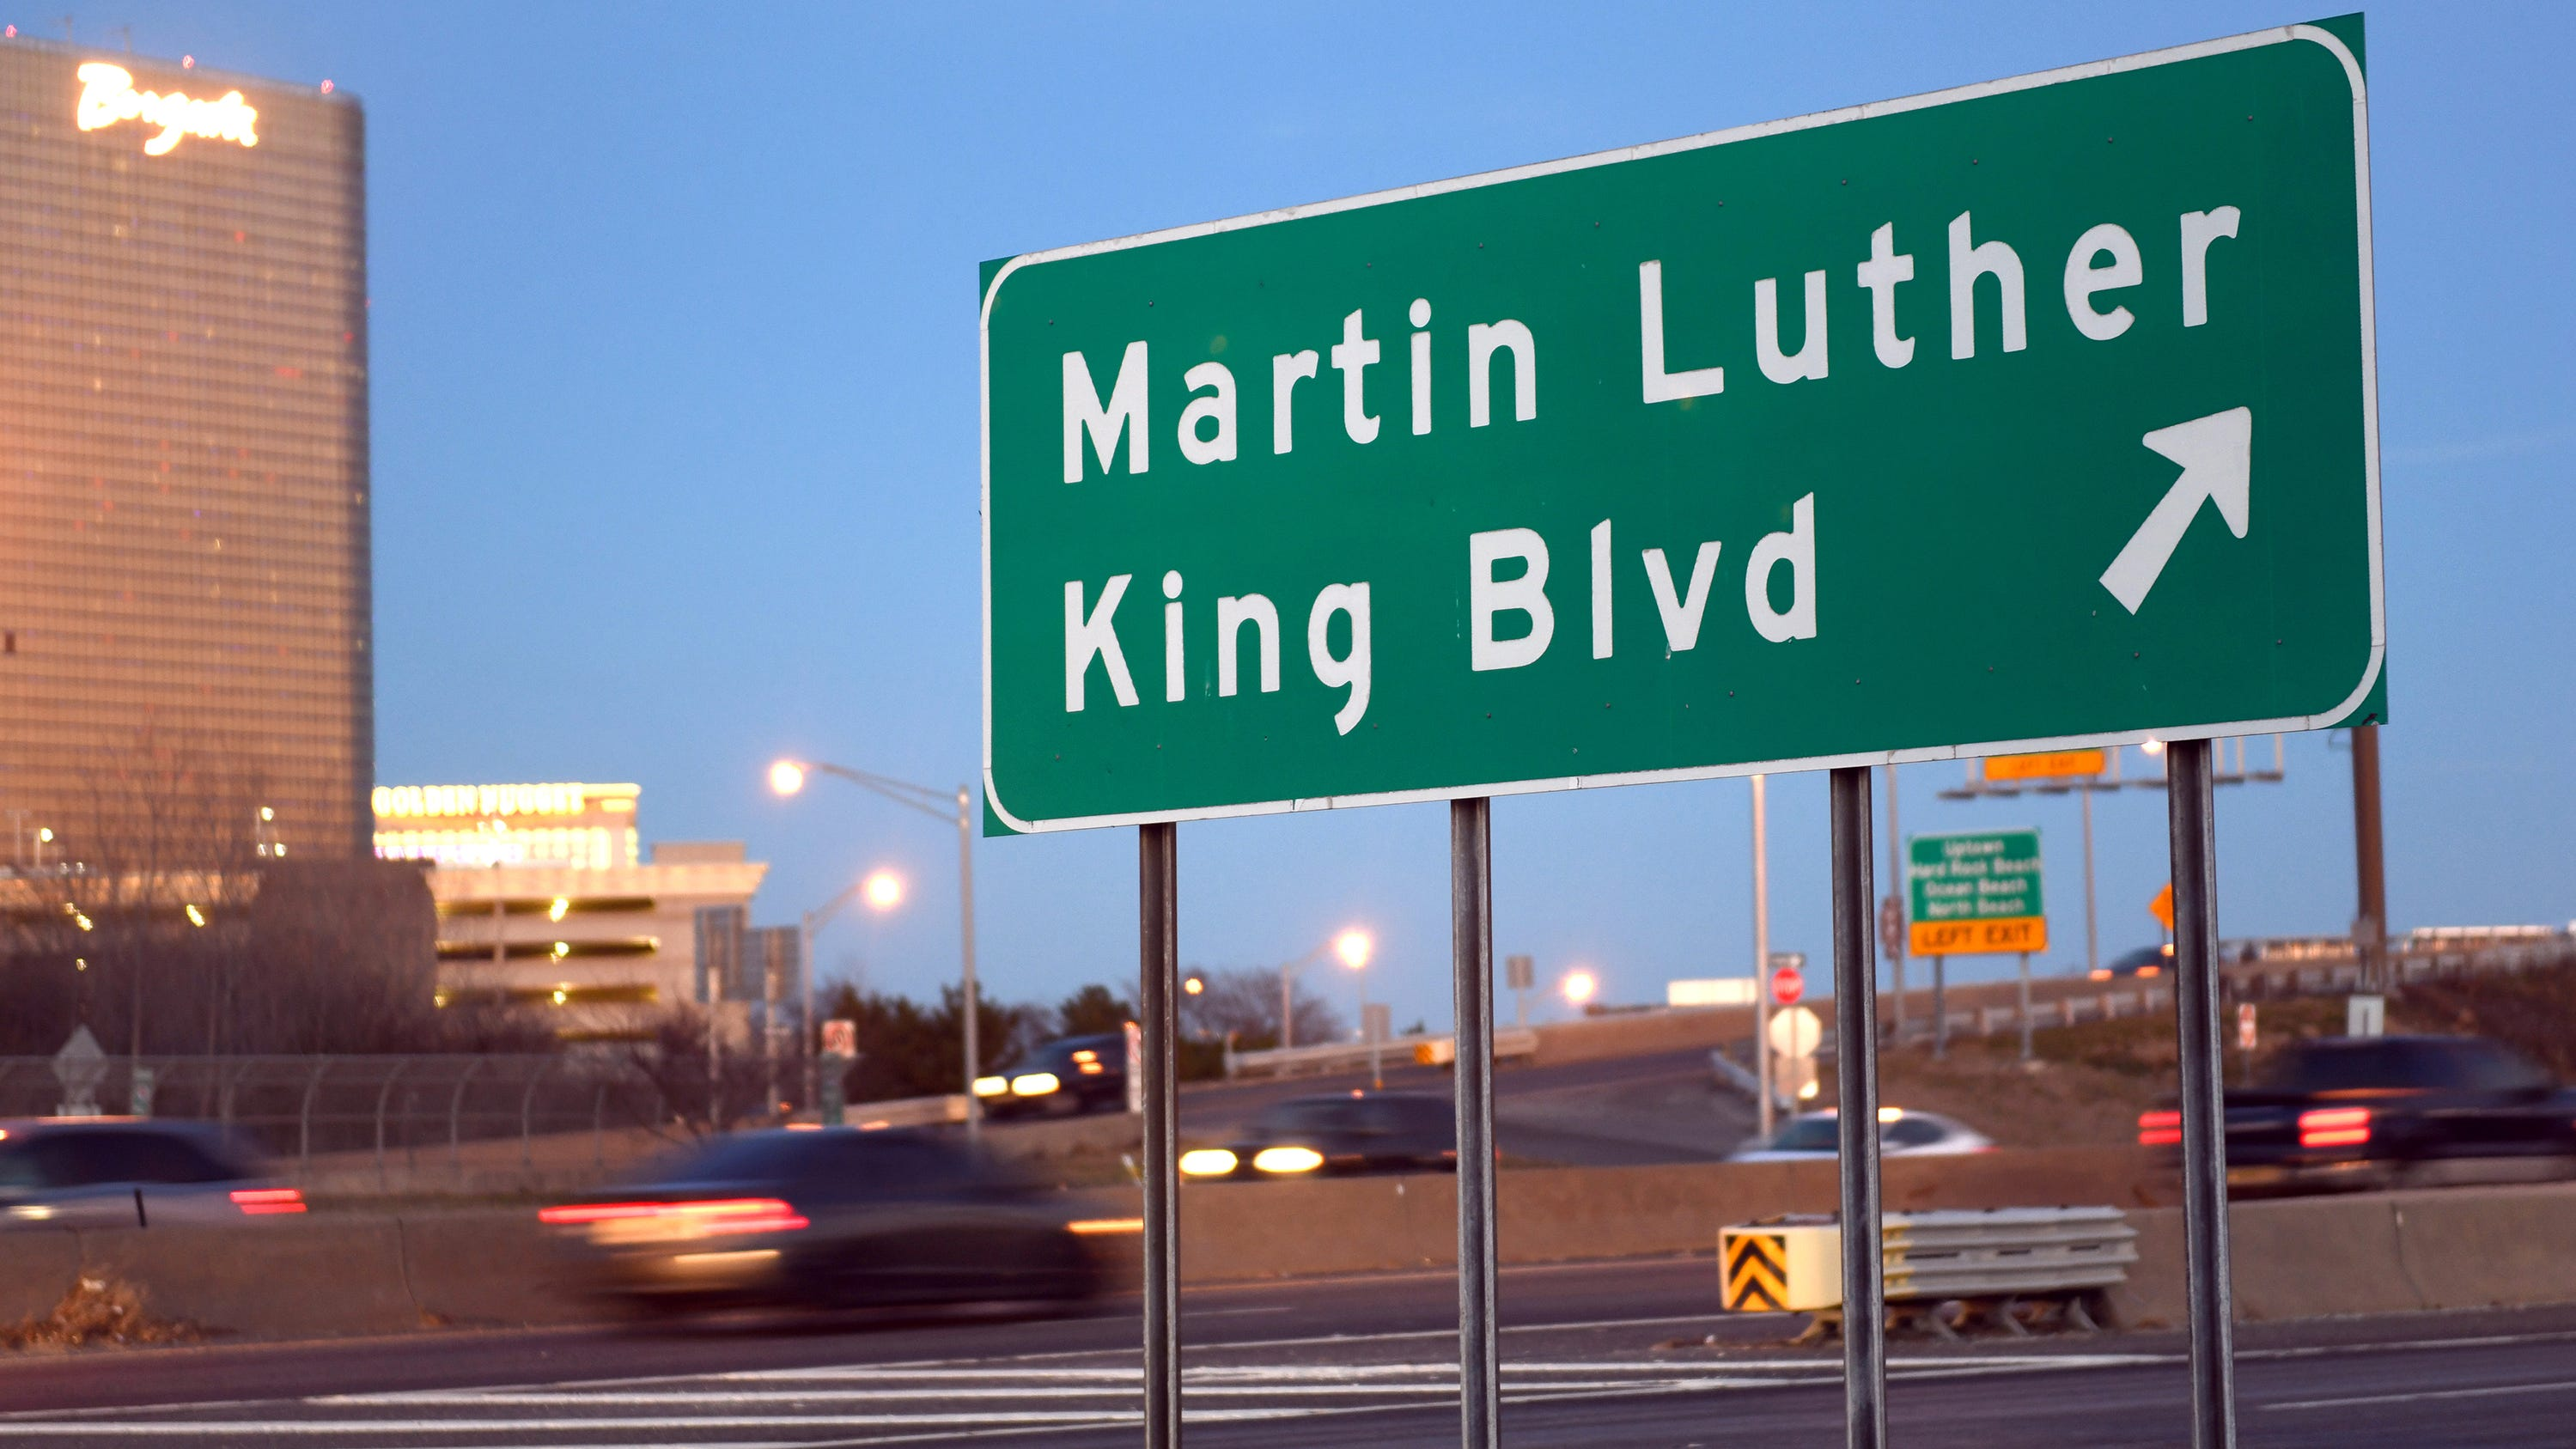 New Jersey's Martin Luther King boulevards: Hope fulfilled or dream deferred?